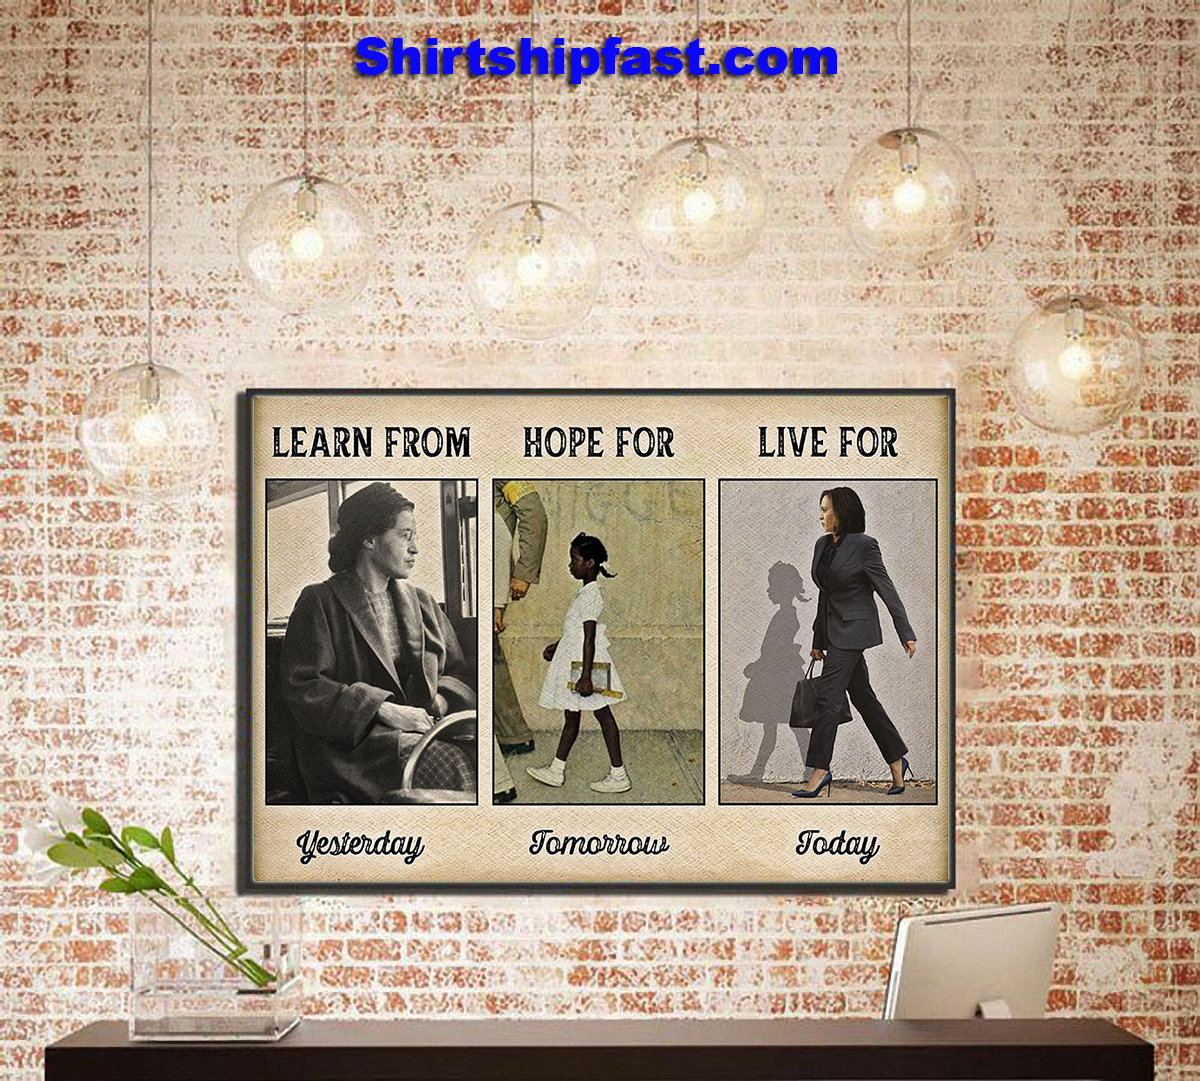 Learn from yesterday hope for tomorrow live for today poster - Picture 1